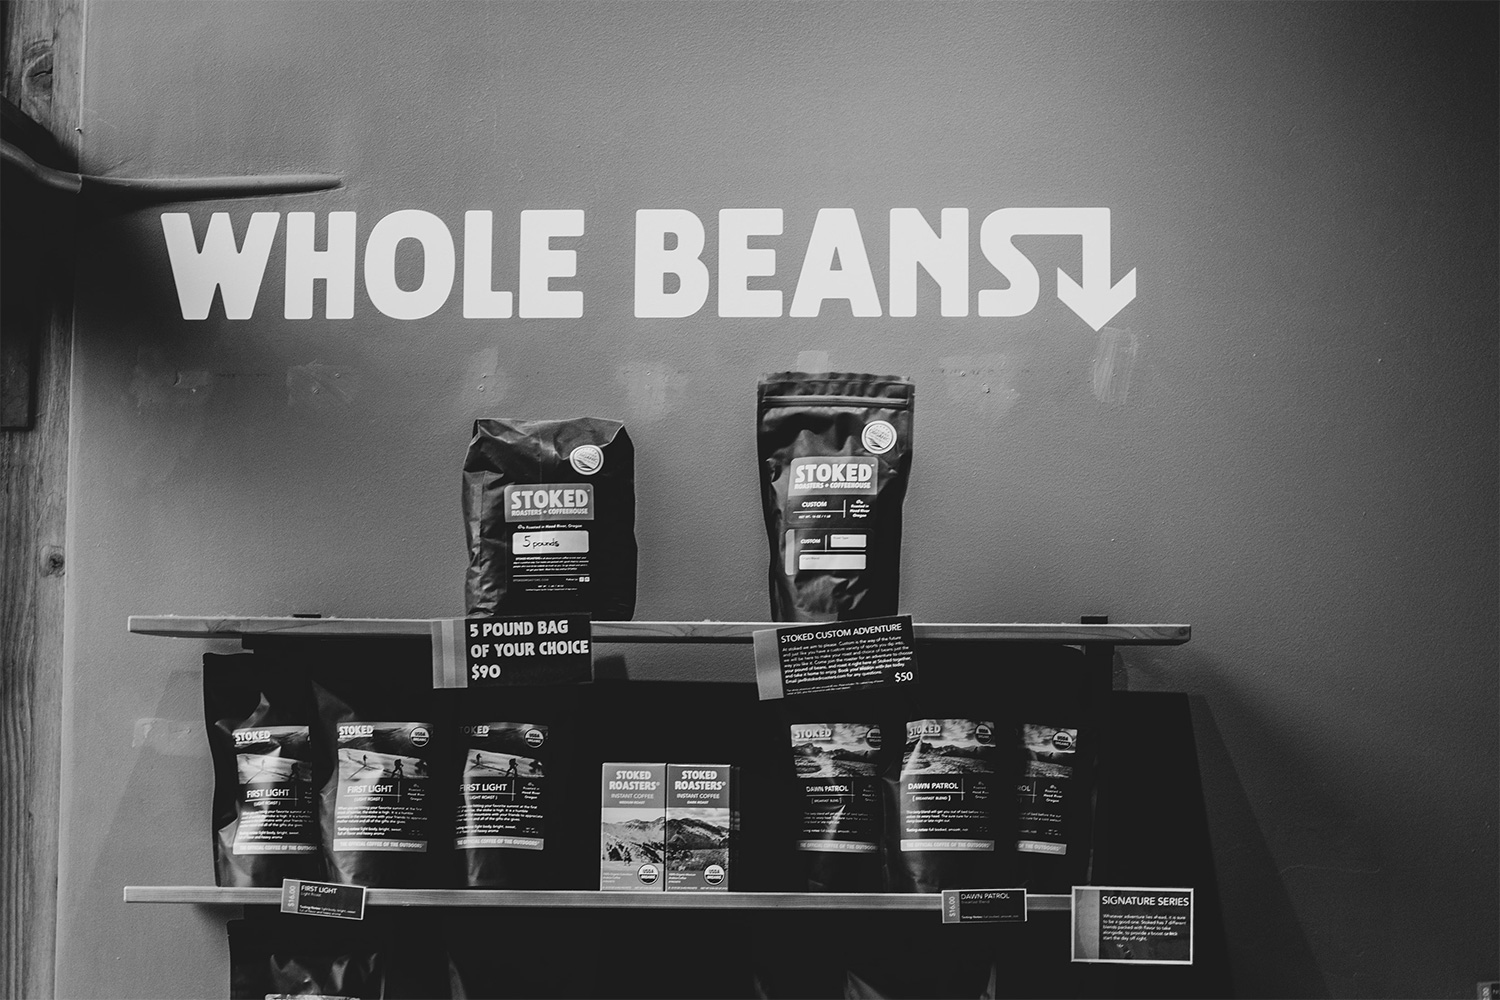 a black and white image of coffee bean bags on a shelf